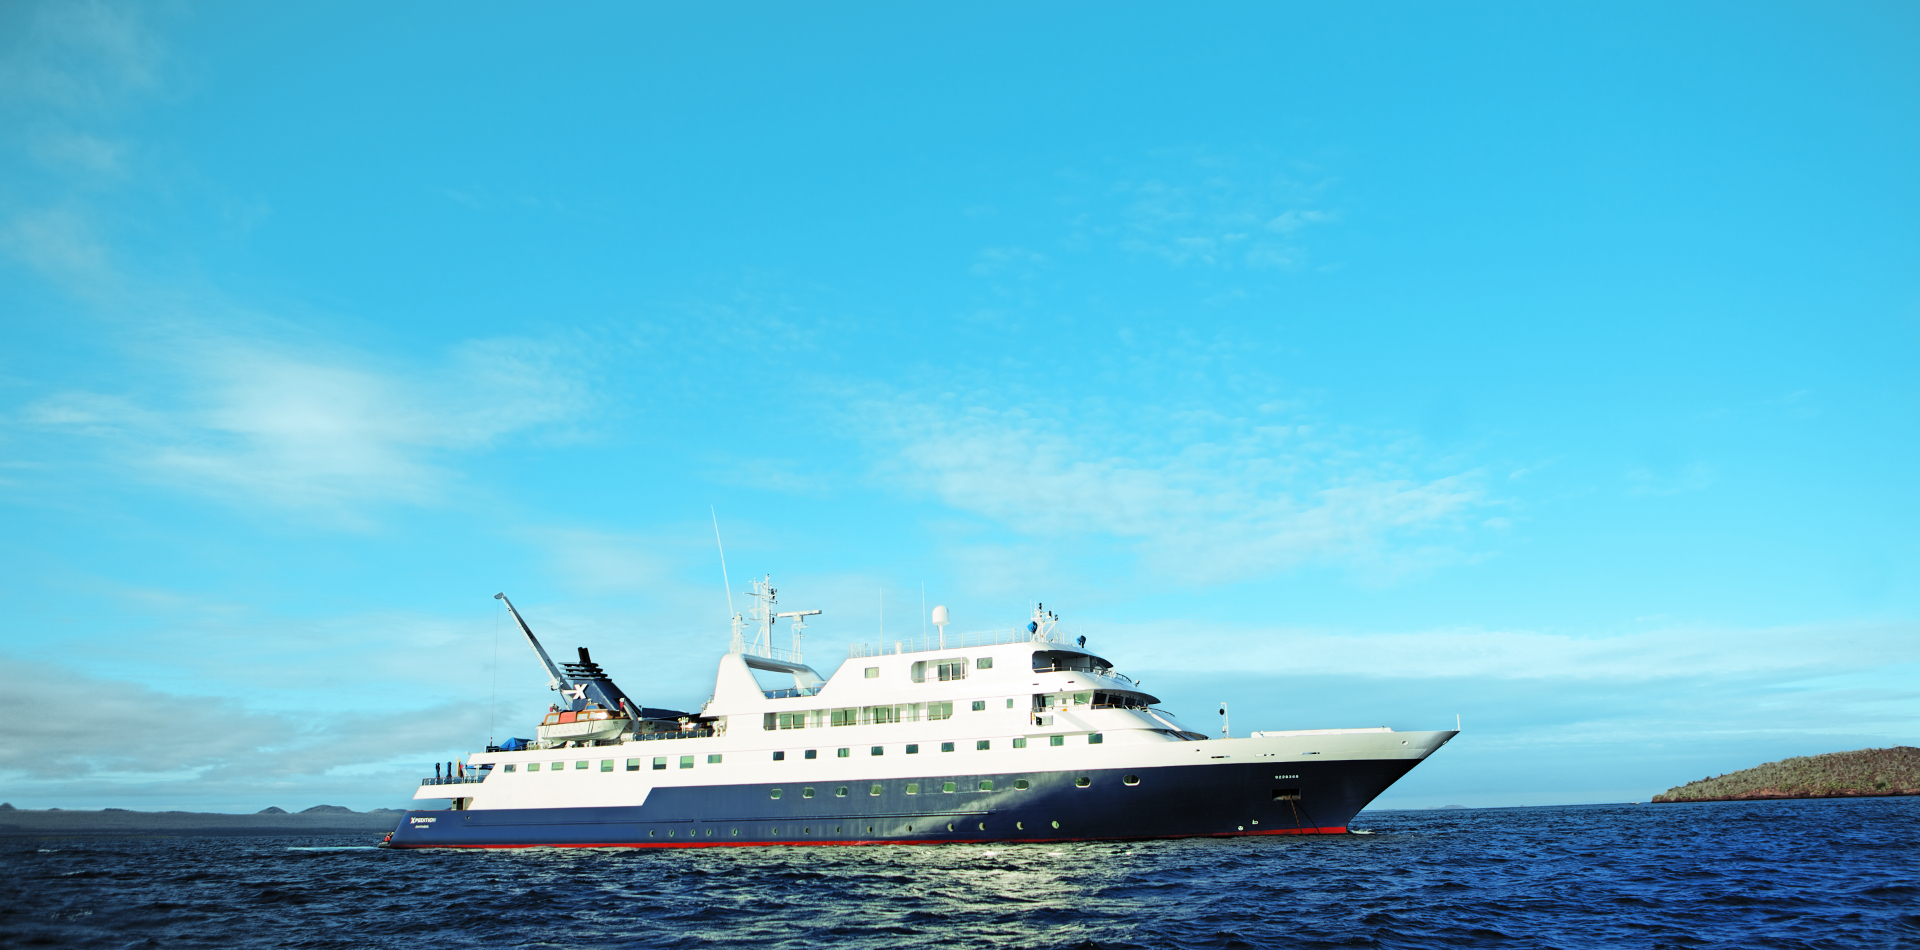 Expeditionskreuzfahrt Celebrity Xpedition, Kreuzfahrt Galapagos Inseln, Kreuzfahrt Celebrity Cruises